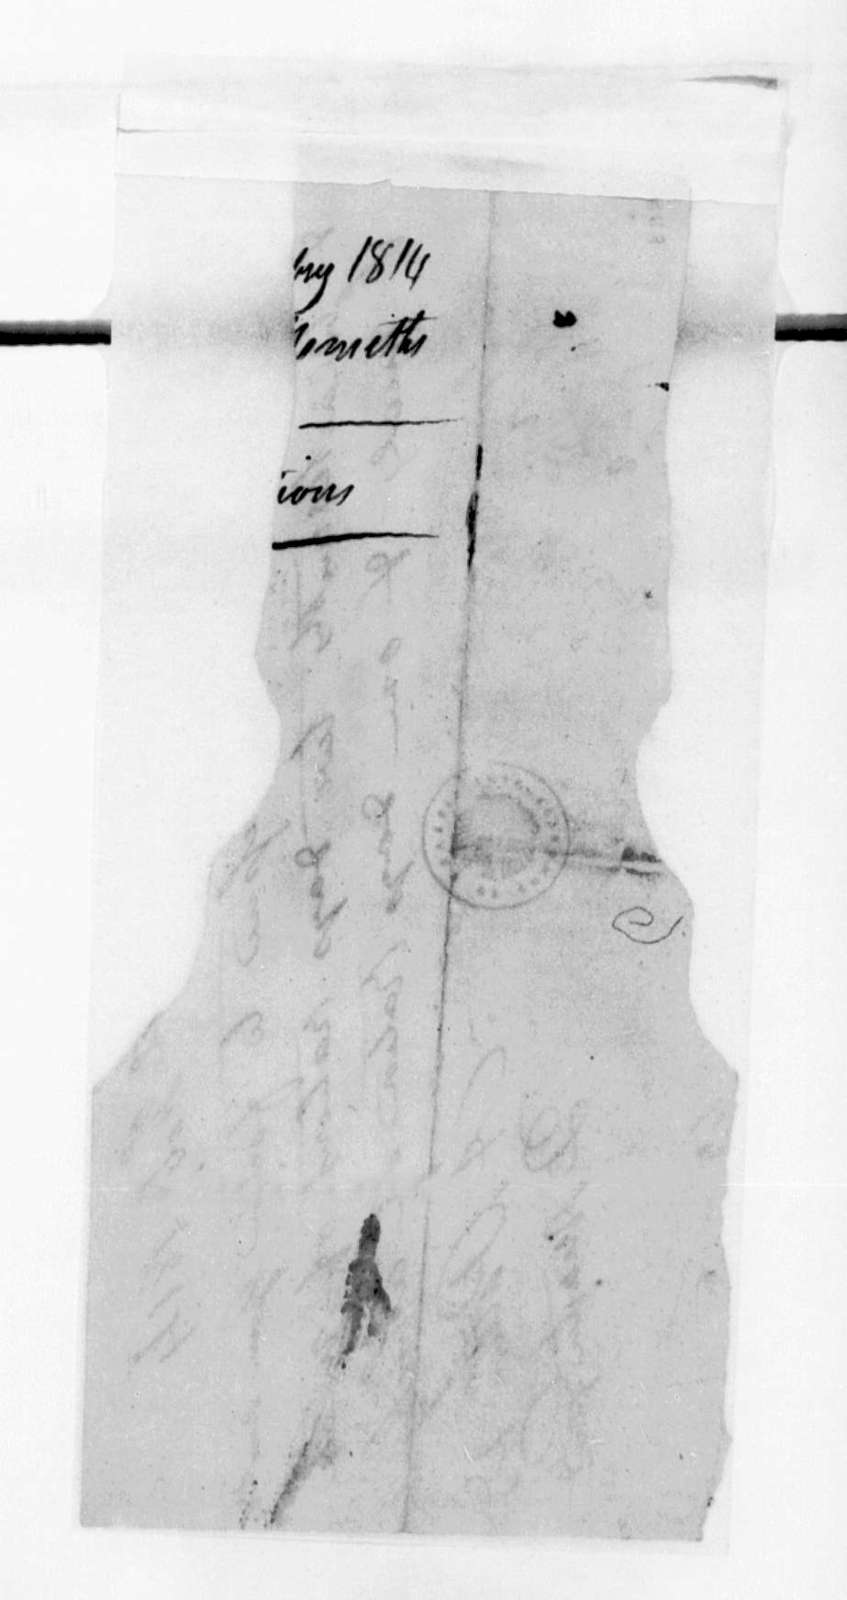 Military Fragments - Unidentified, arranged chronologically